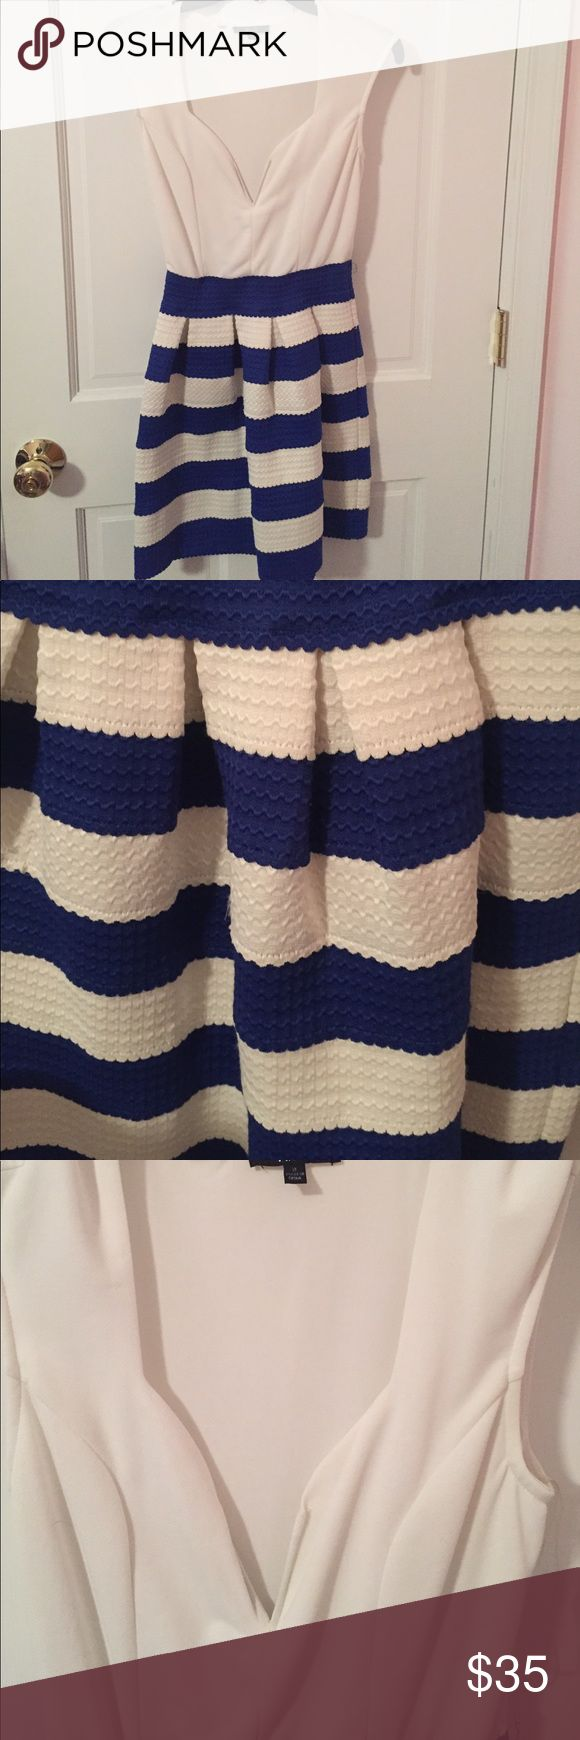 Amazing Striped Pleated Sundress Worn once to a horse race! Can be dressed up with heels or down with sandals!! Absolutely stunning.the top is tight and can hold boobs in place without a bra (always a plus), while the skirt part is pleated, and is puffed out ever so slightly. It really is beautiful on and accentuates a body, creating an hour glass figure Dresses